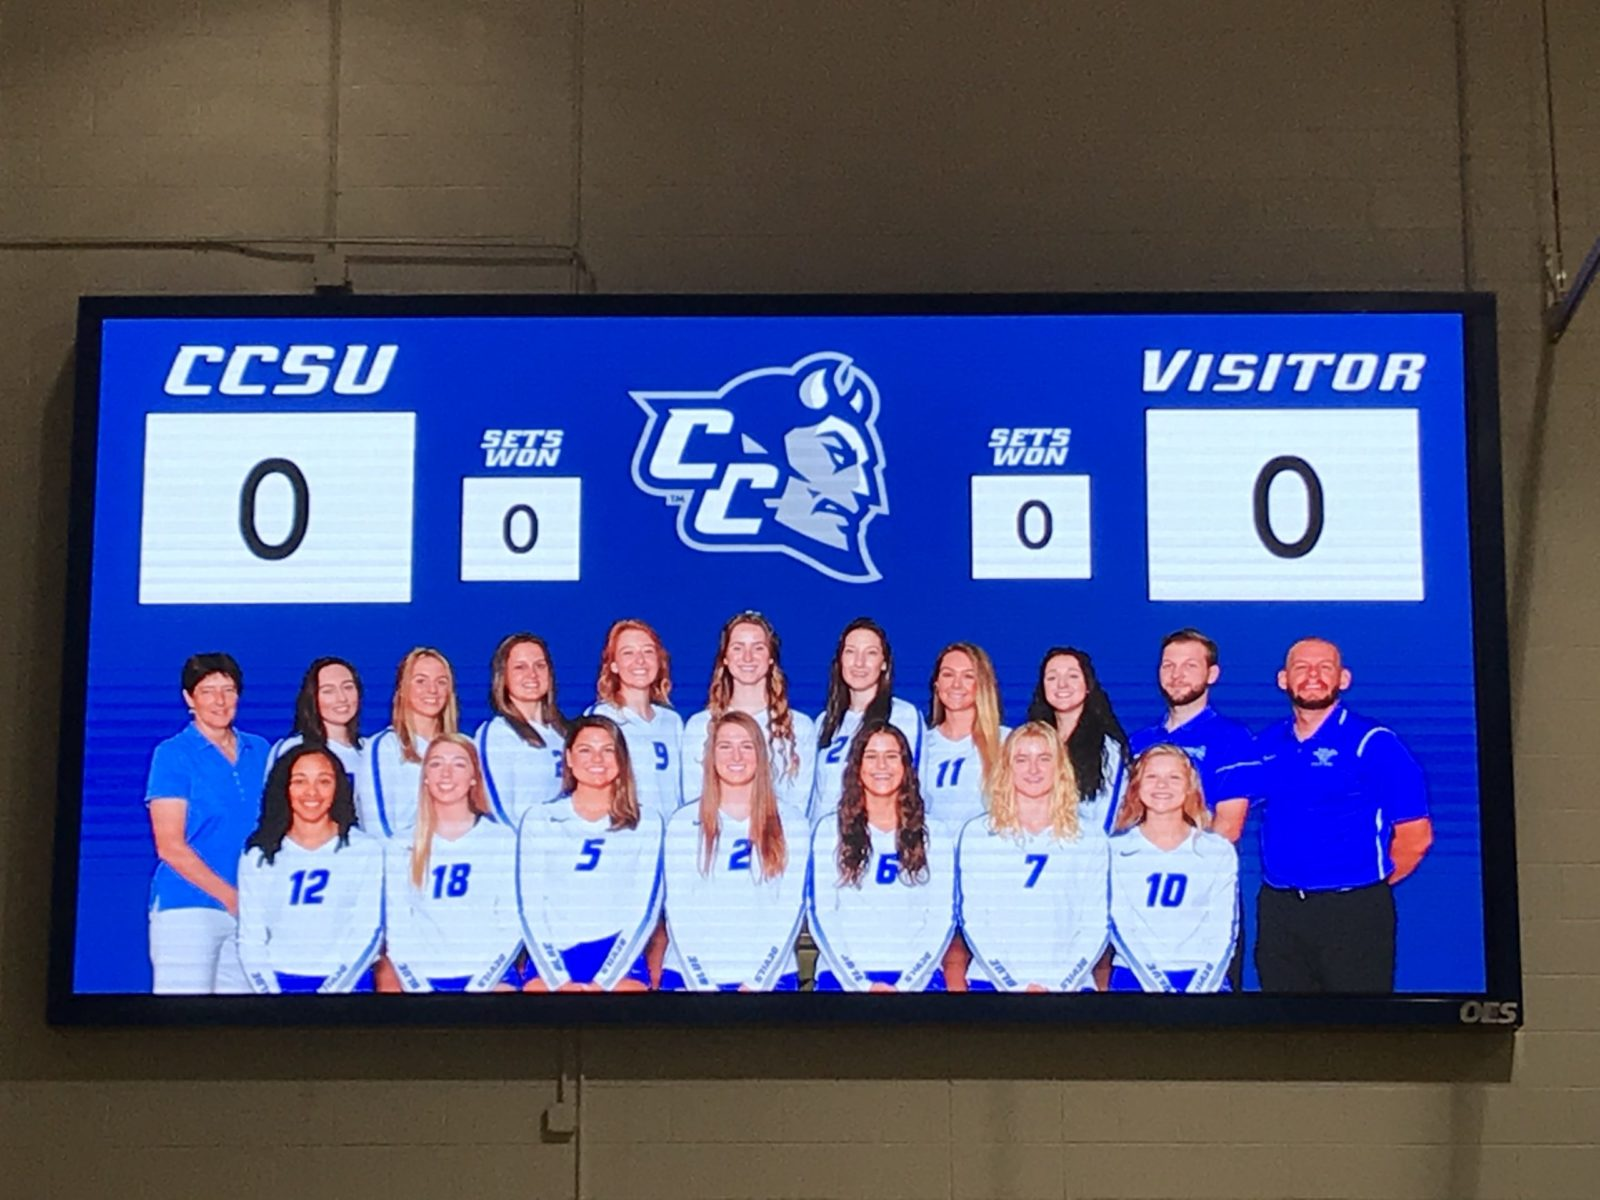 The Central Connecticut indoor scoreboard with an image of the volleyball team.